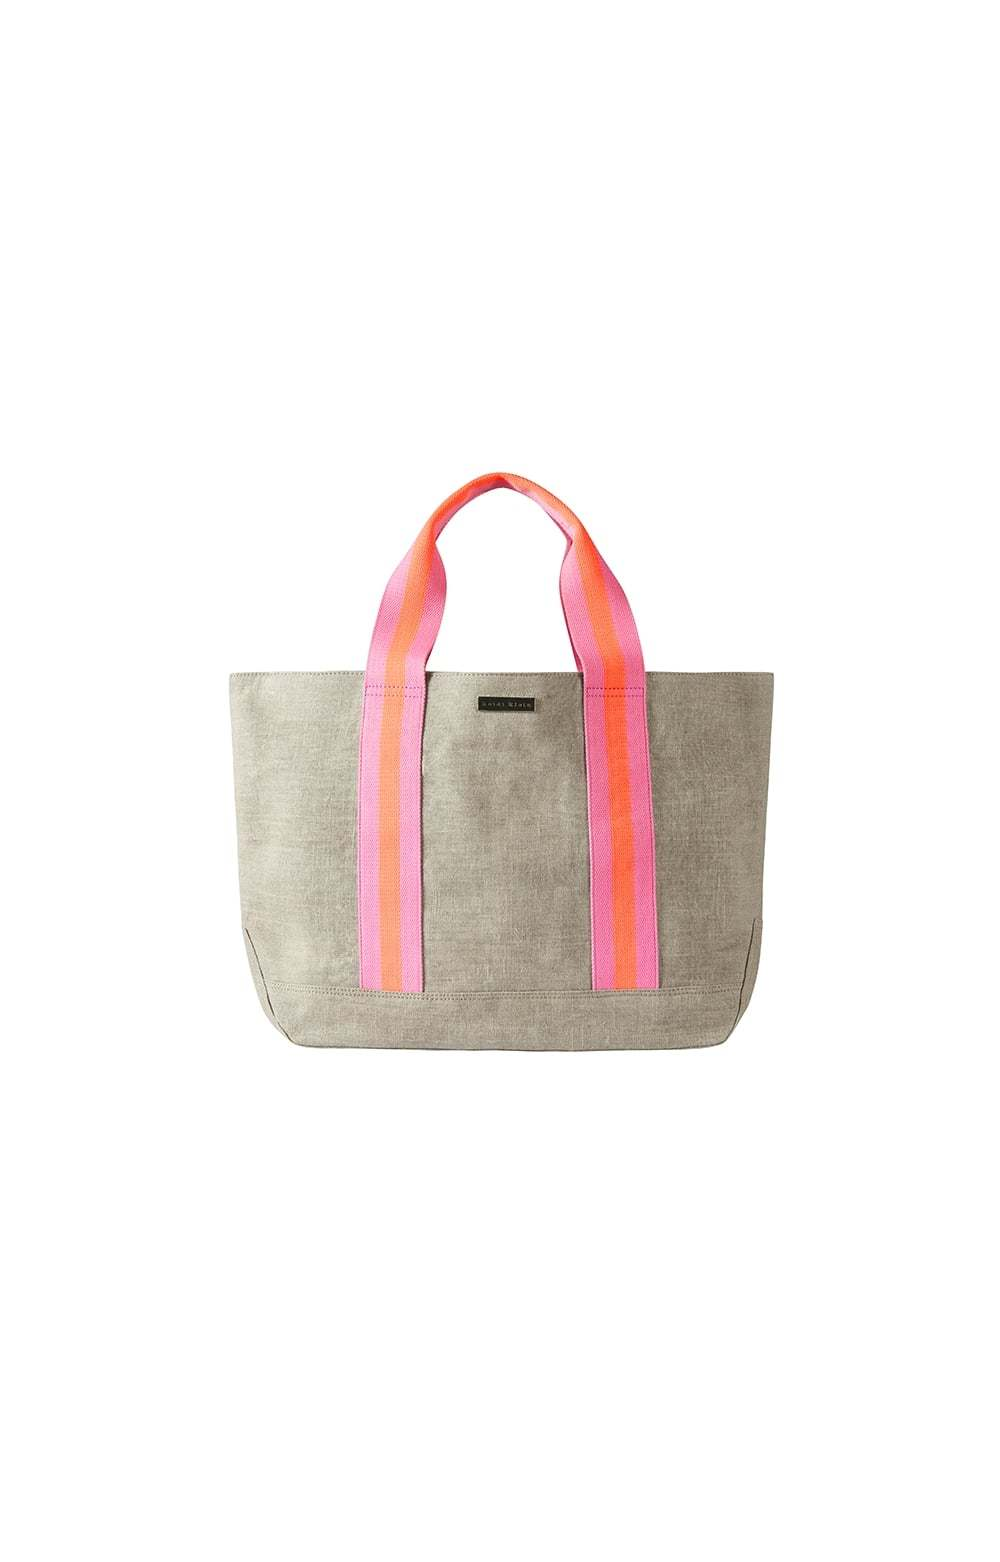 Bimini Stripe Canvas Beach Tote Pink - predominant colour: pink; secondary colour: taupe; occasions: casual, holiday; type of pattern: standard; style: tote; length: handle; size: oversized; material: fabric; pattern: plain; finish: plain; season: s/s 2013